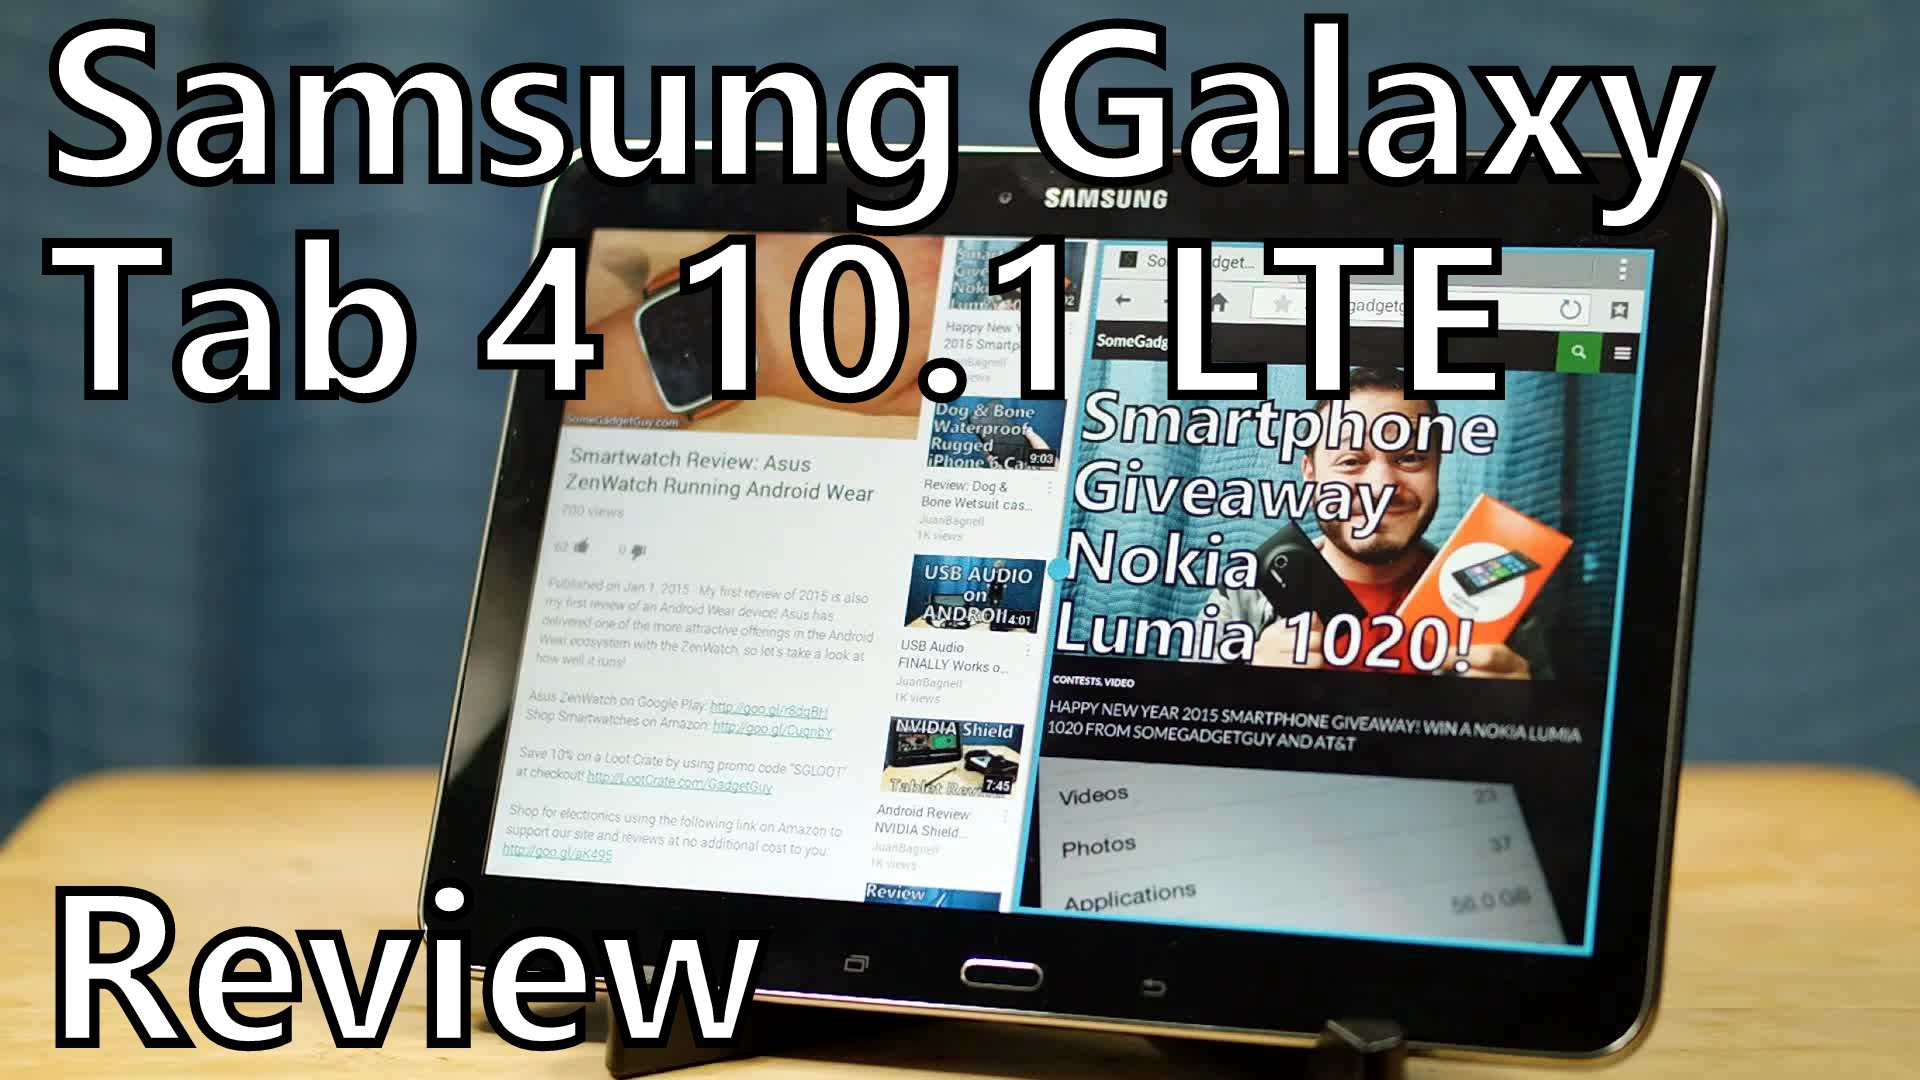 Review: Samsung Galaxy Tab 4, 10 1 on AT&T – LTE on an